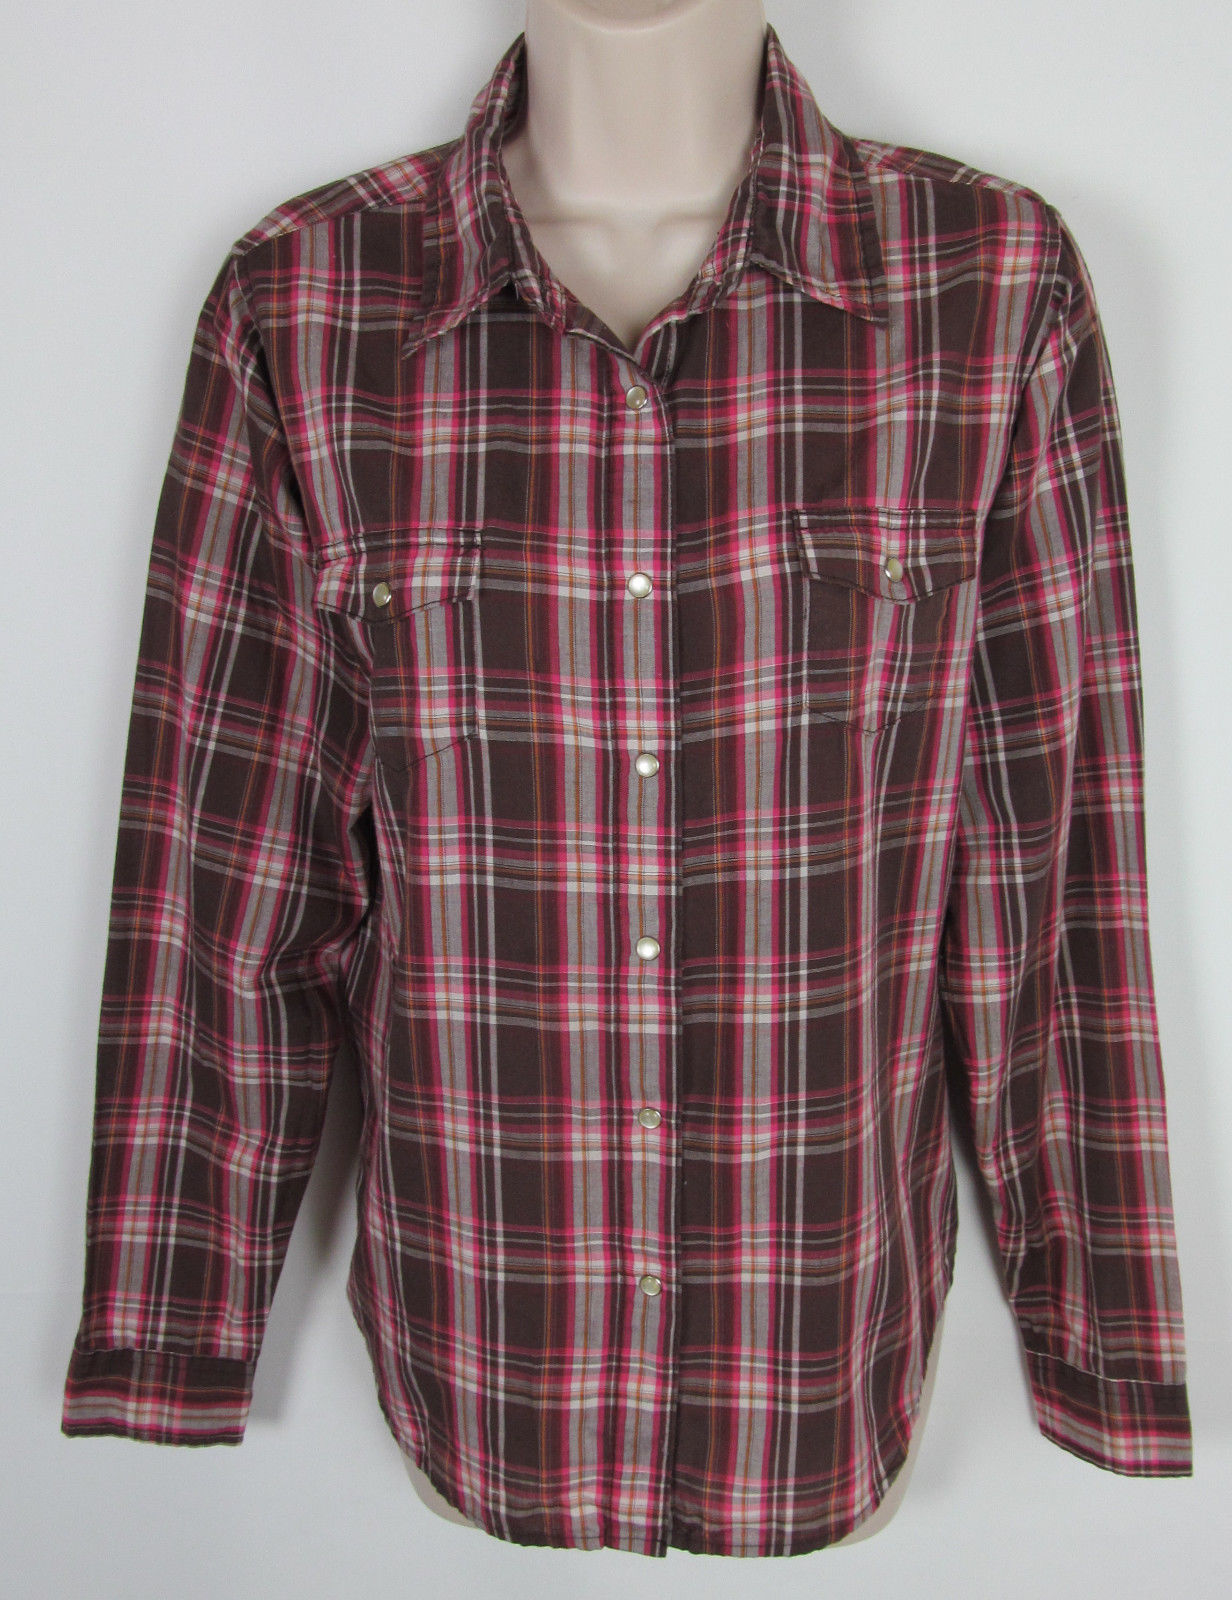 5ff57c99 S l1600. S l1600. Previous. Wrangler Wrancher Western shirt Pearl snap long  sleeve plaid Womens Size L